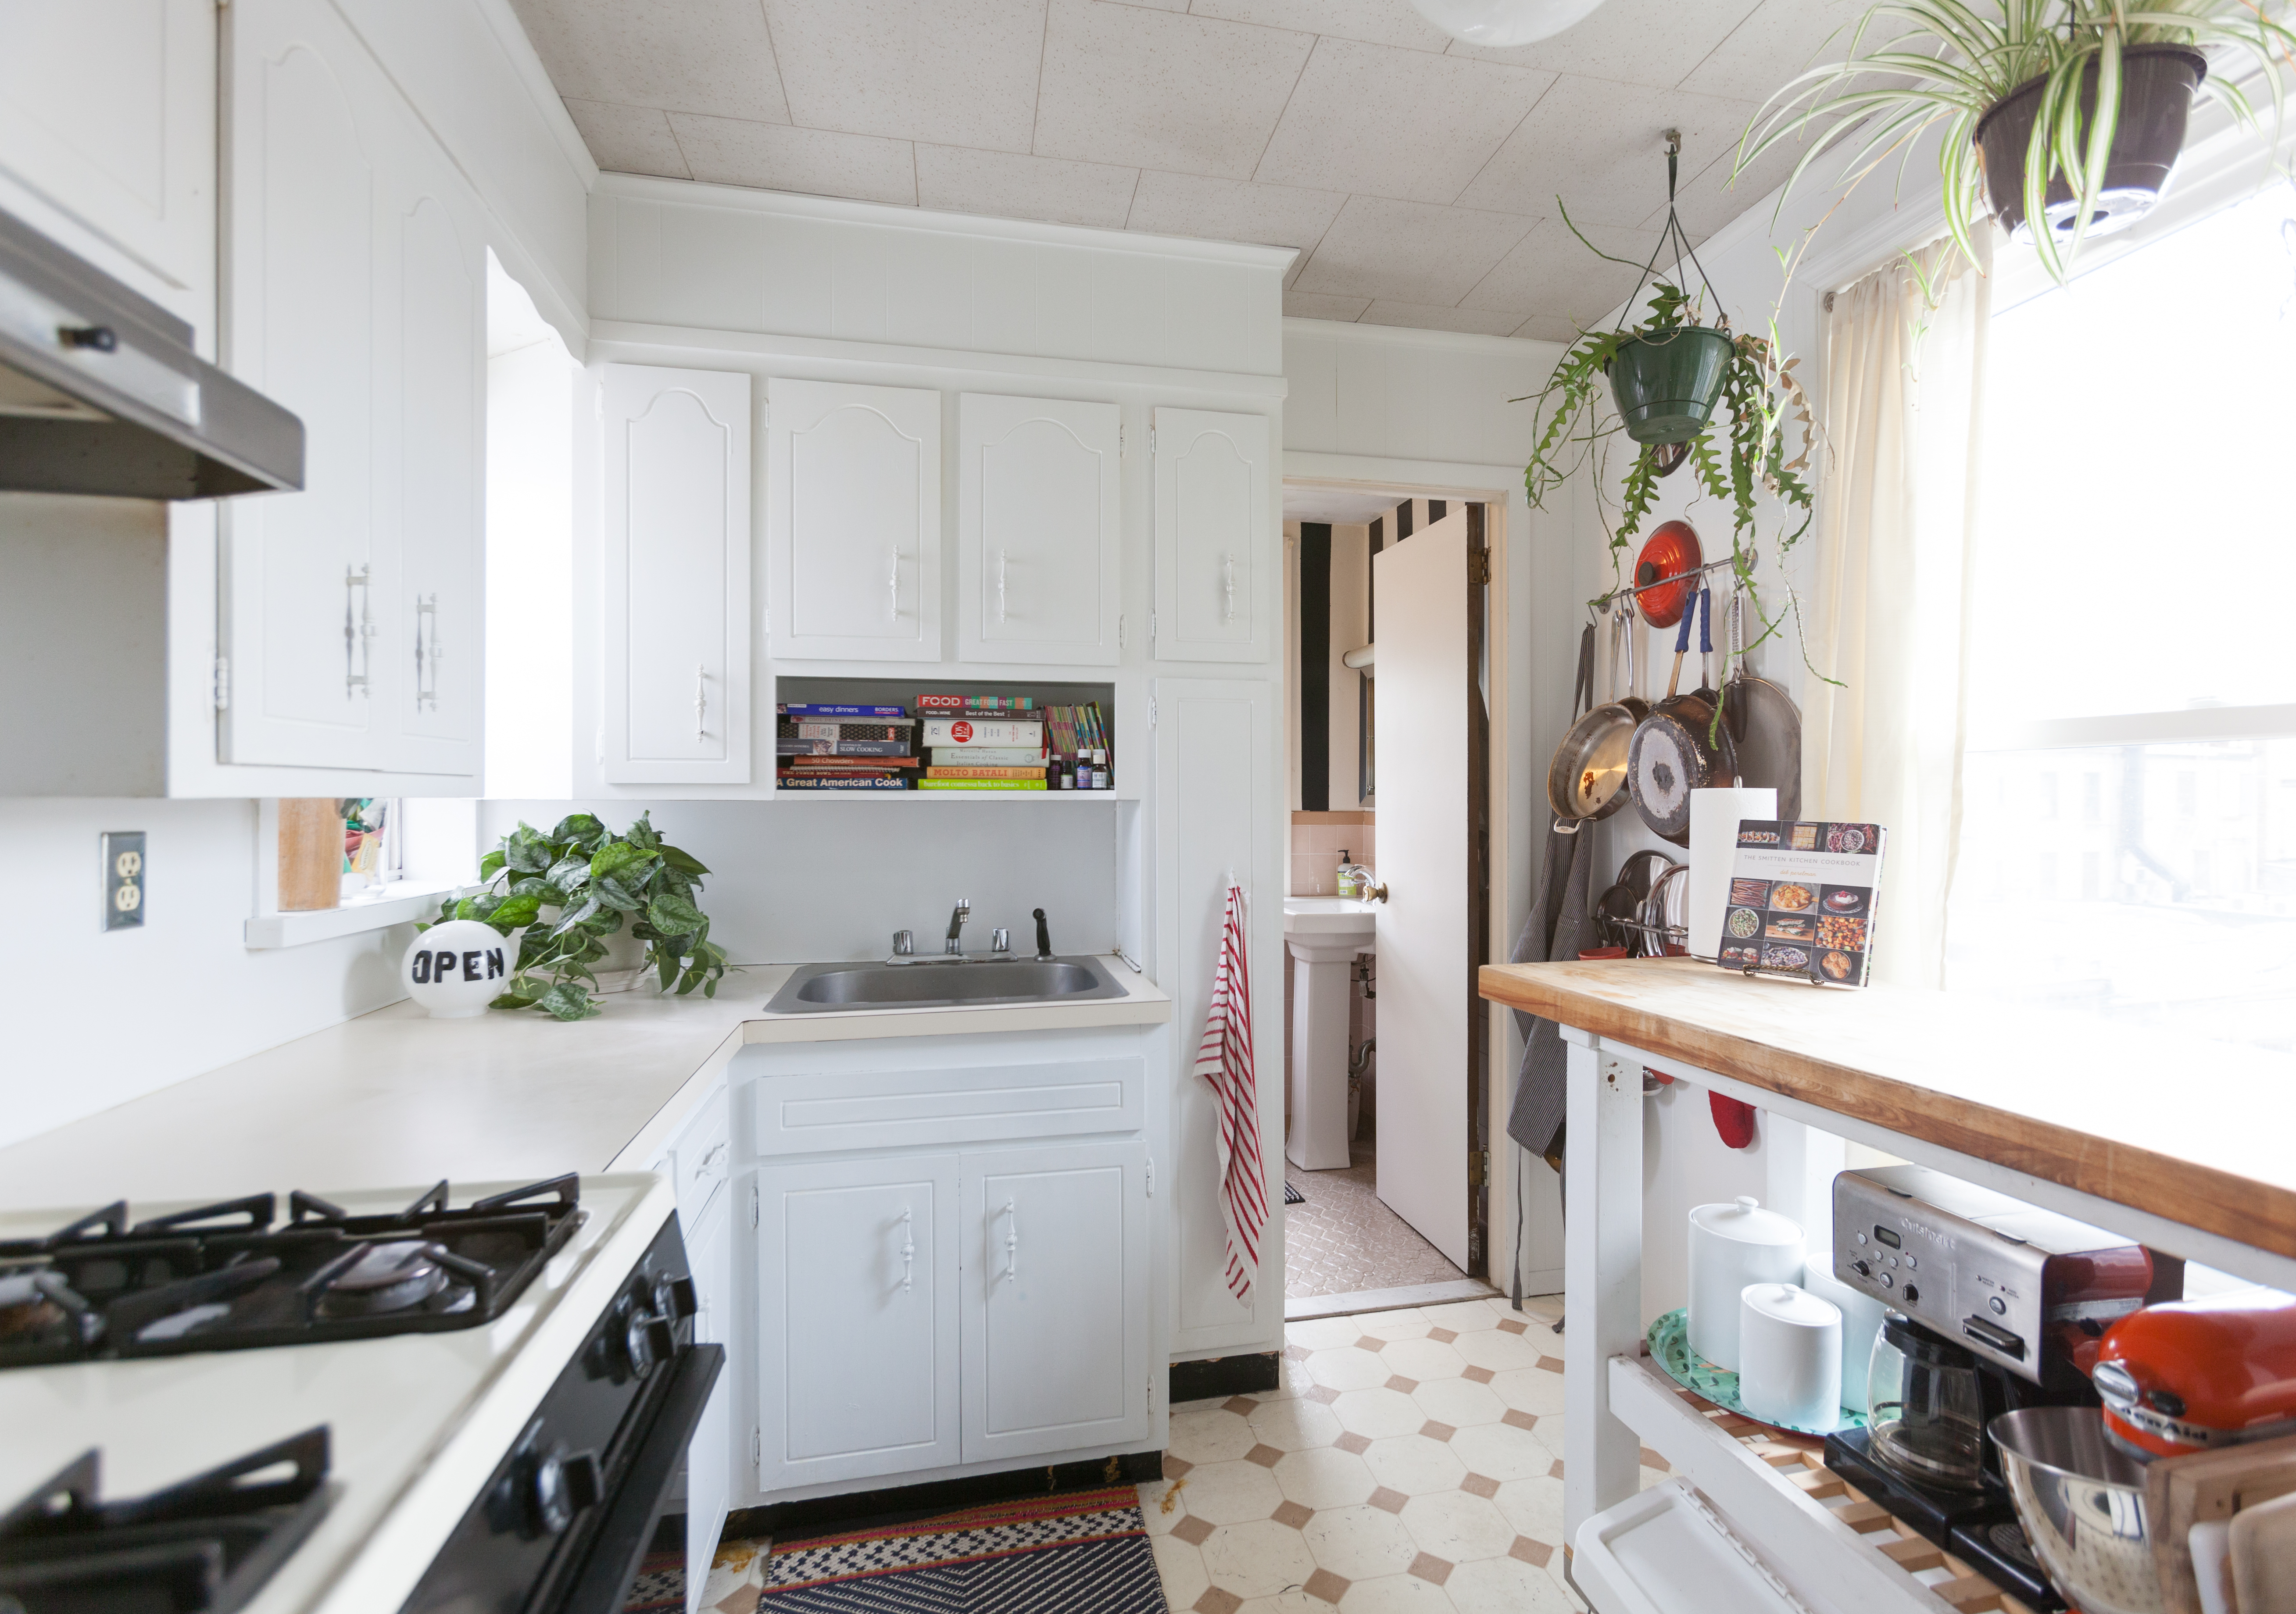 Kitchen Cabinets Contact Paper Cockroach Problem | Apartment ...